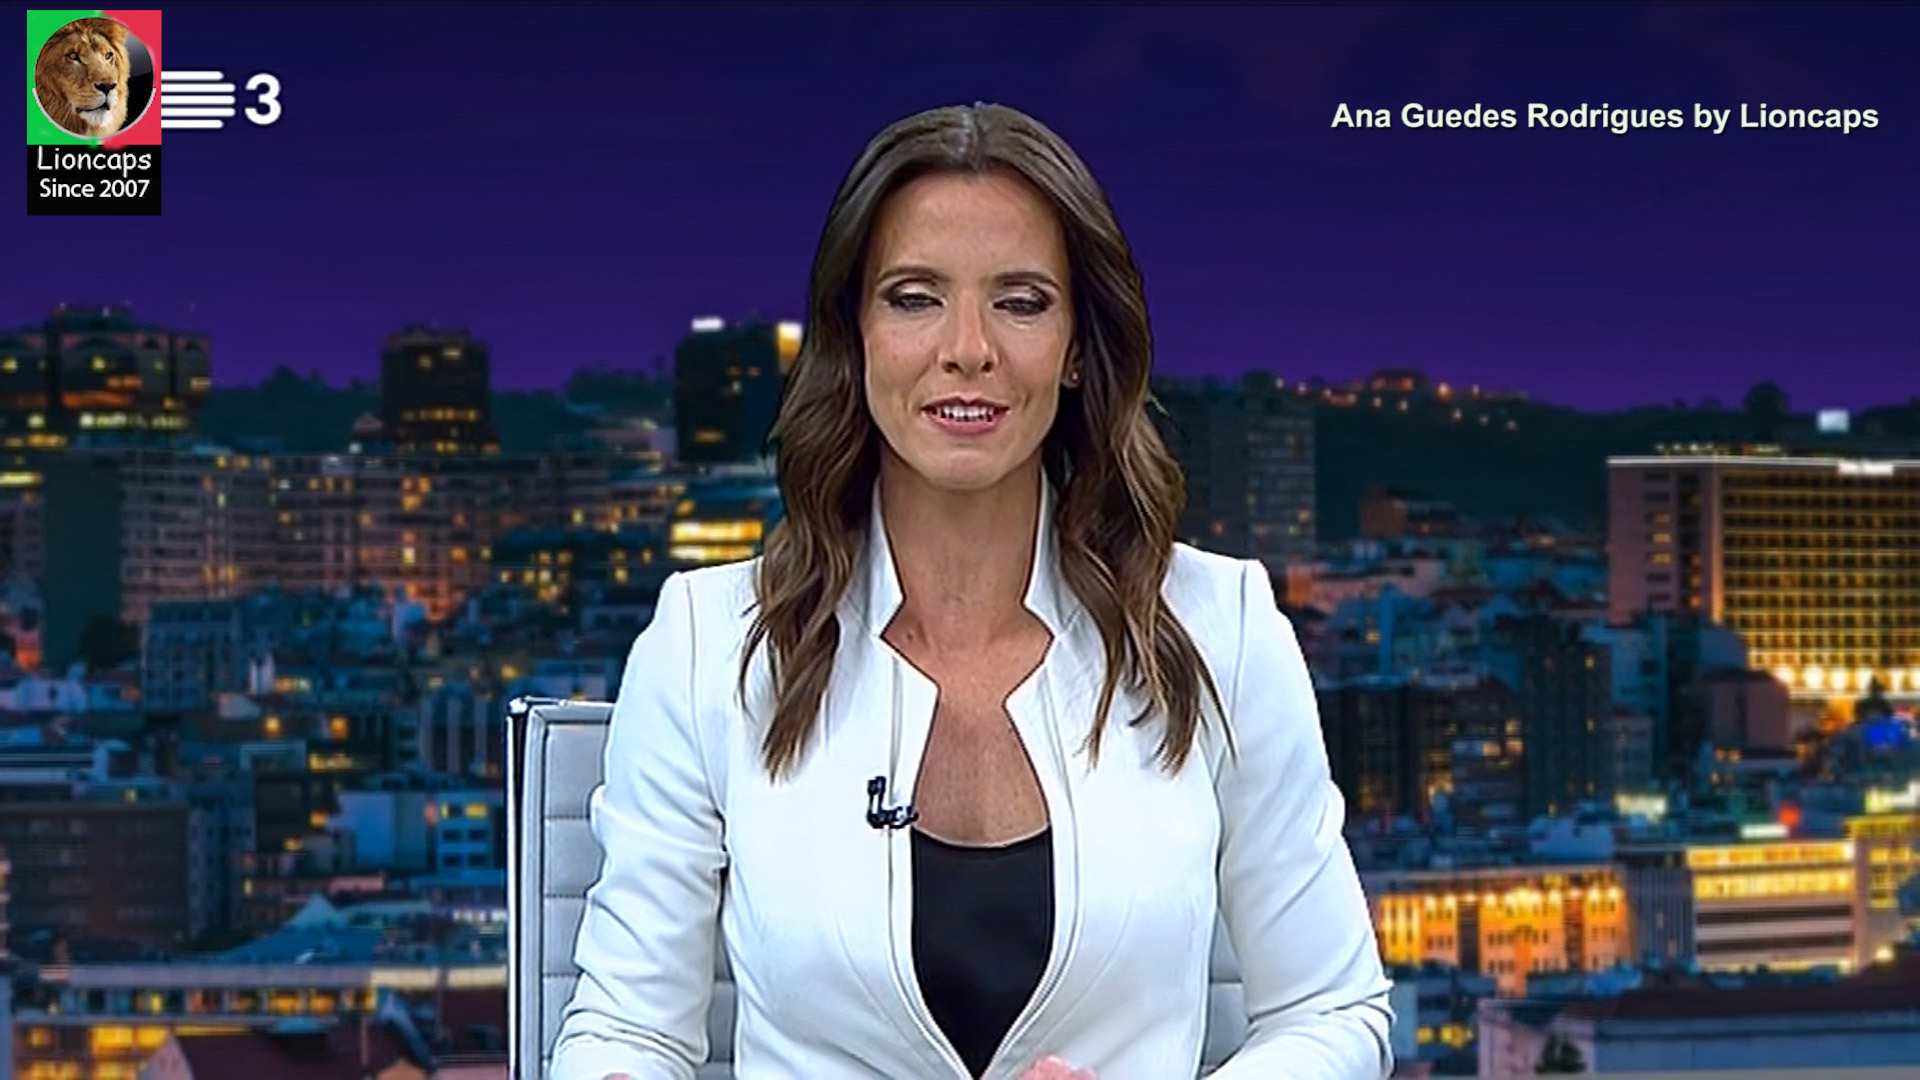 ana_guedes_rodrigues_lioncaps_15_08_2021 (5).jpg